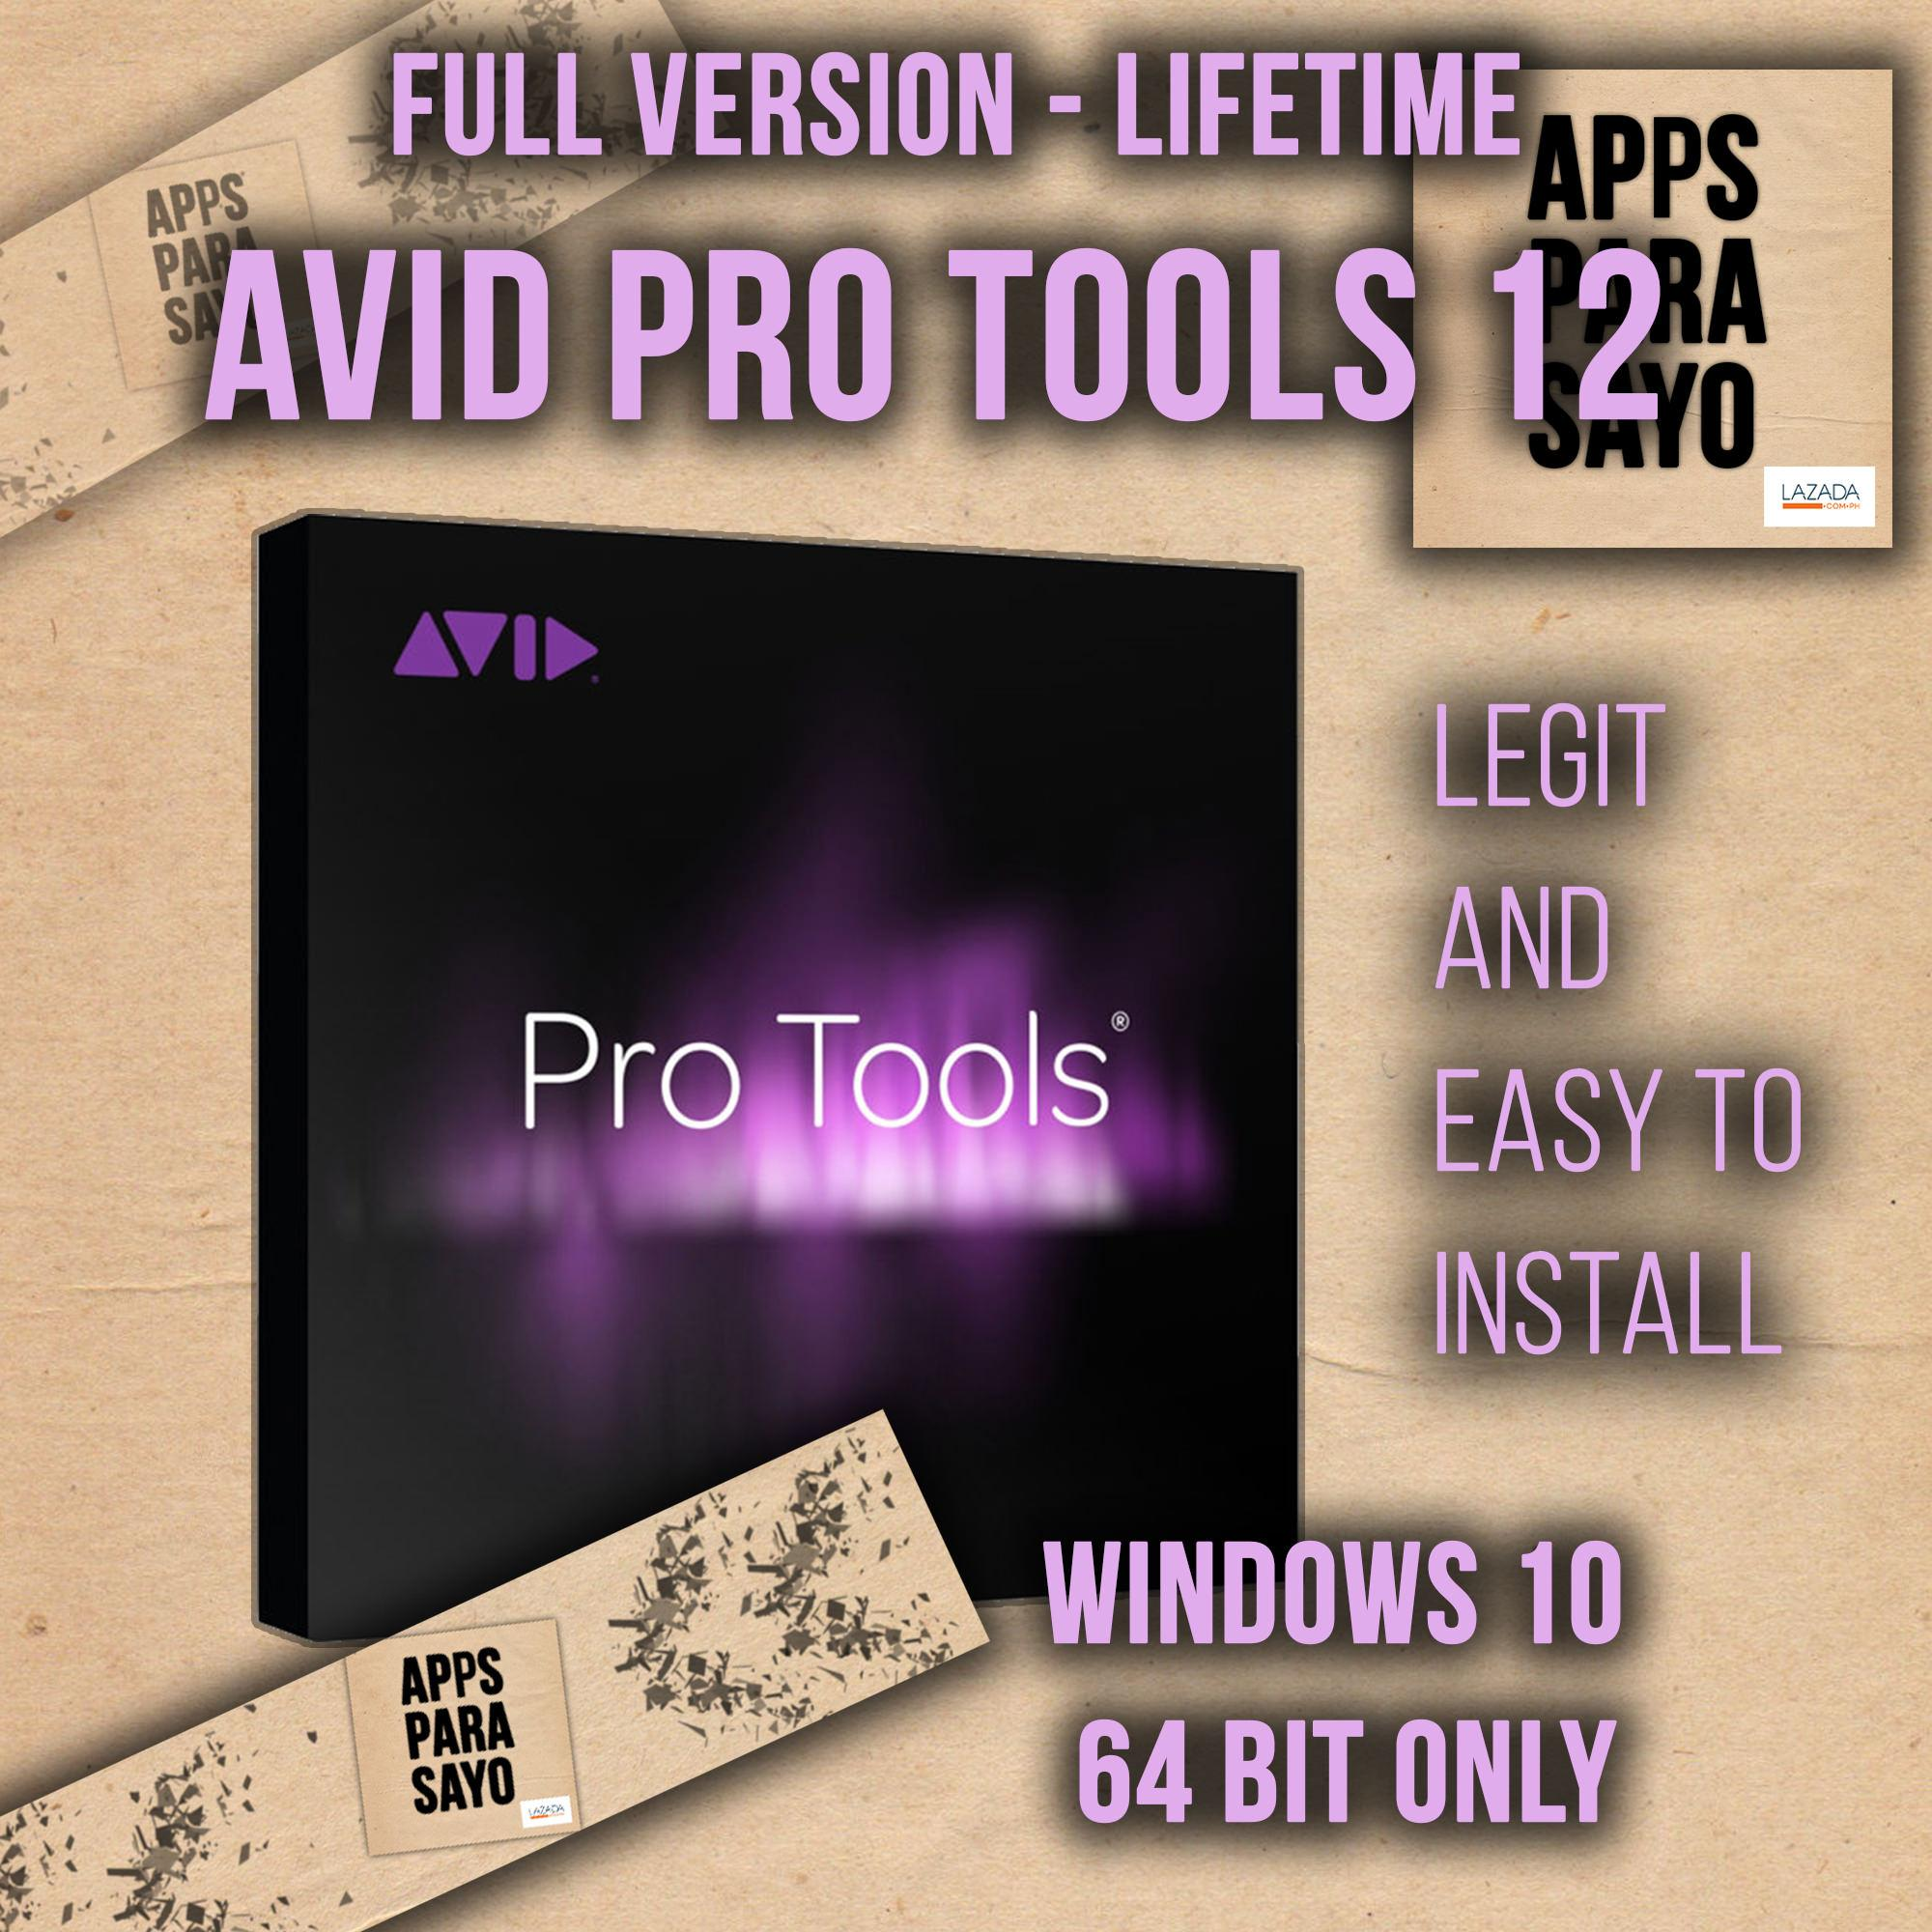 Avid Pro Tools 12 - lifetime version for Windows 10 64 bit only ( Create-  Collaborate- Be Heard)